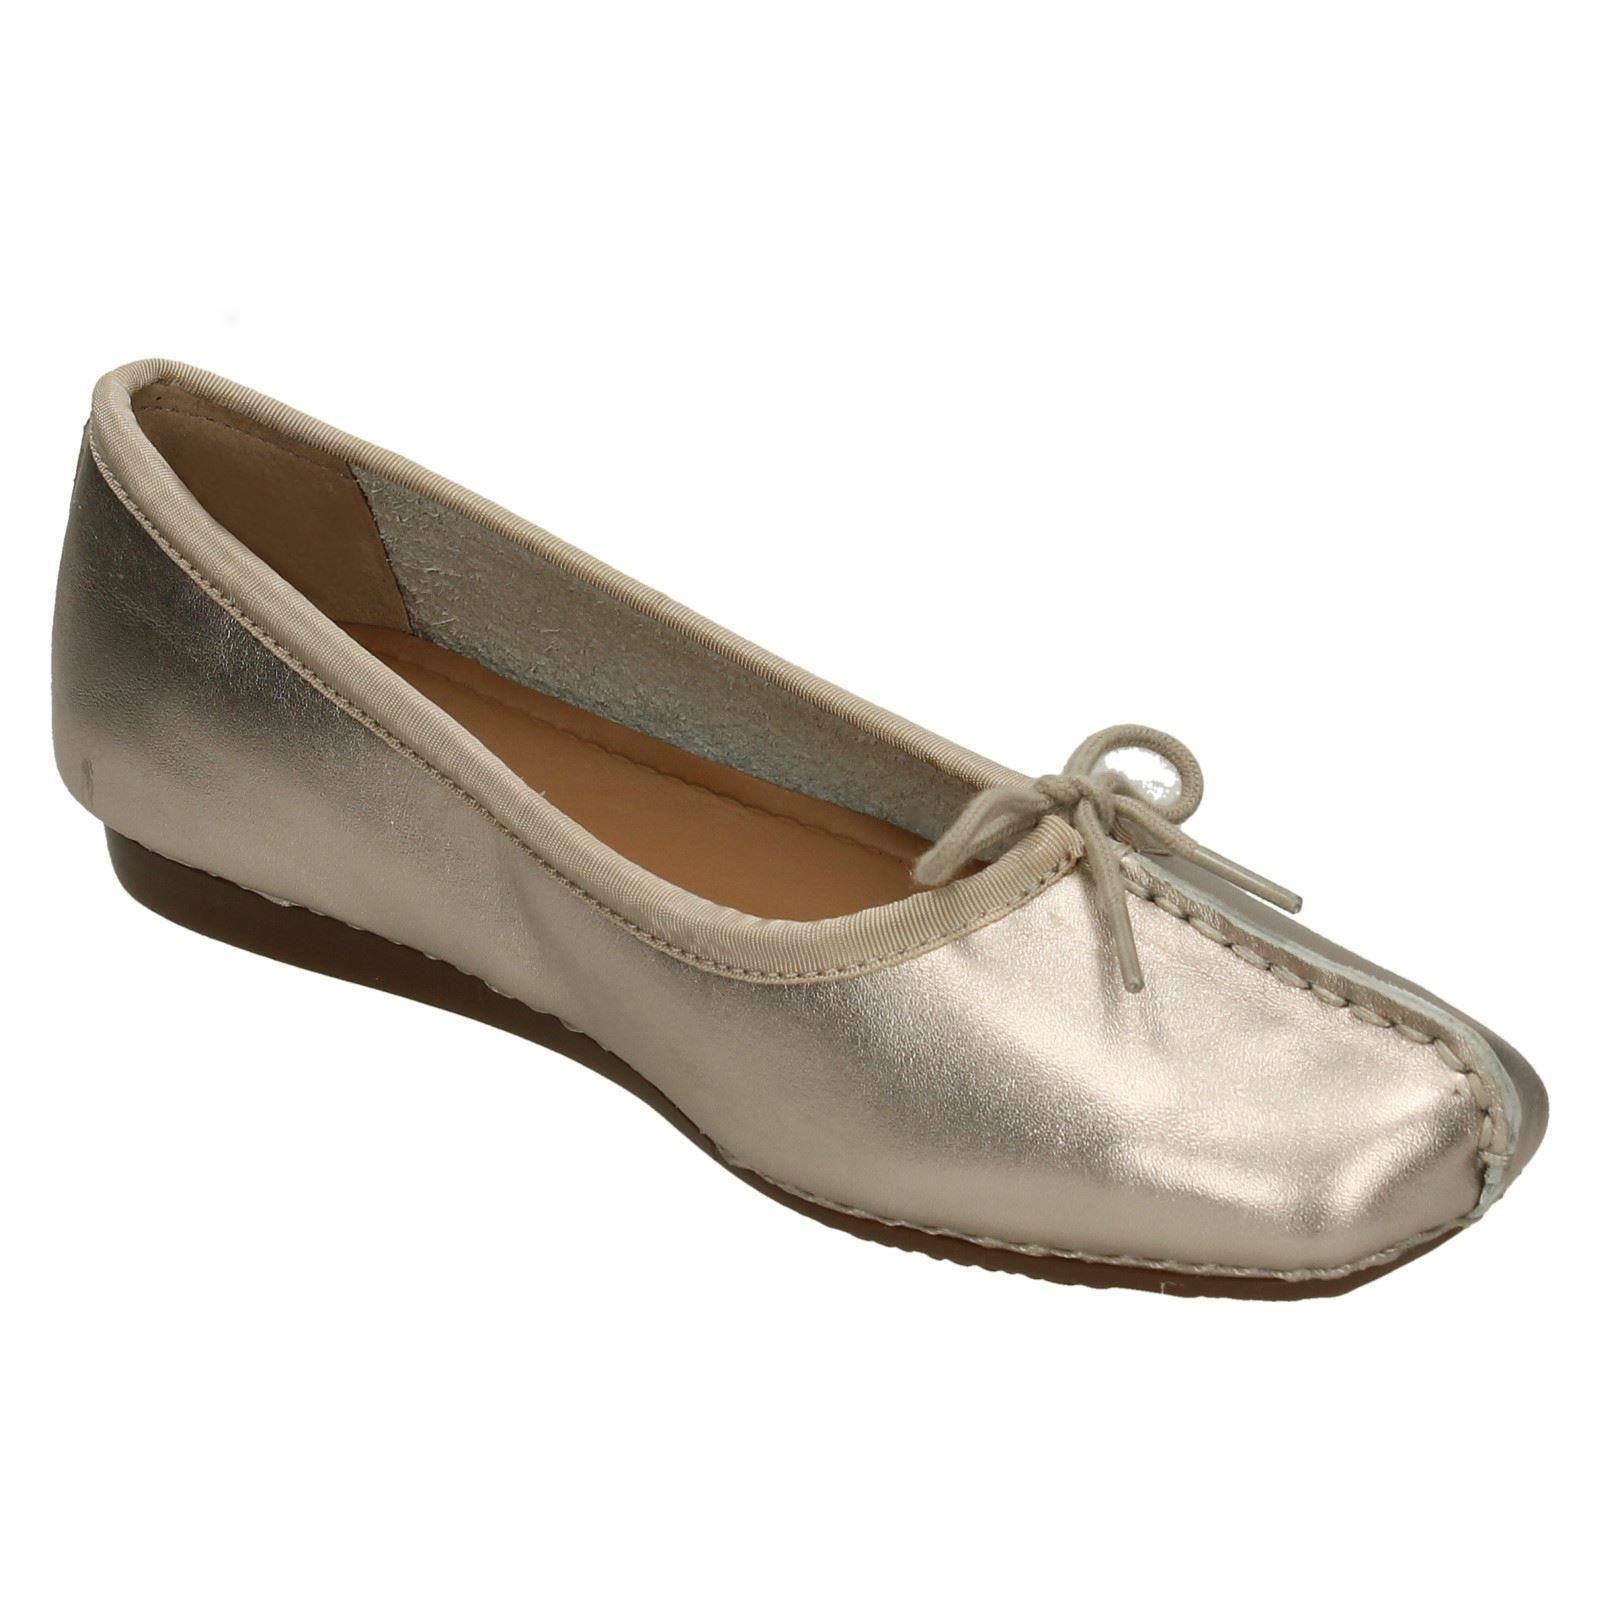 Unstructured By Clarks Ladies Ballerina Flats Flats Flats Freckle Ice 17 6069bd